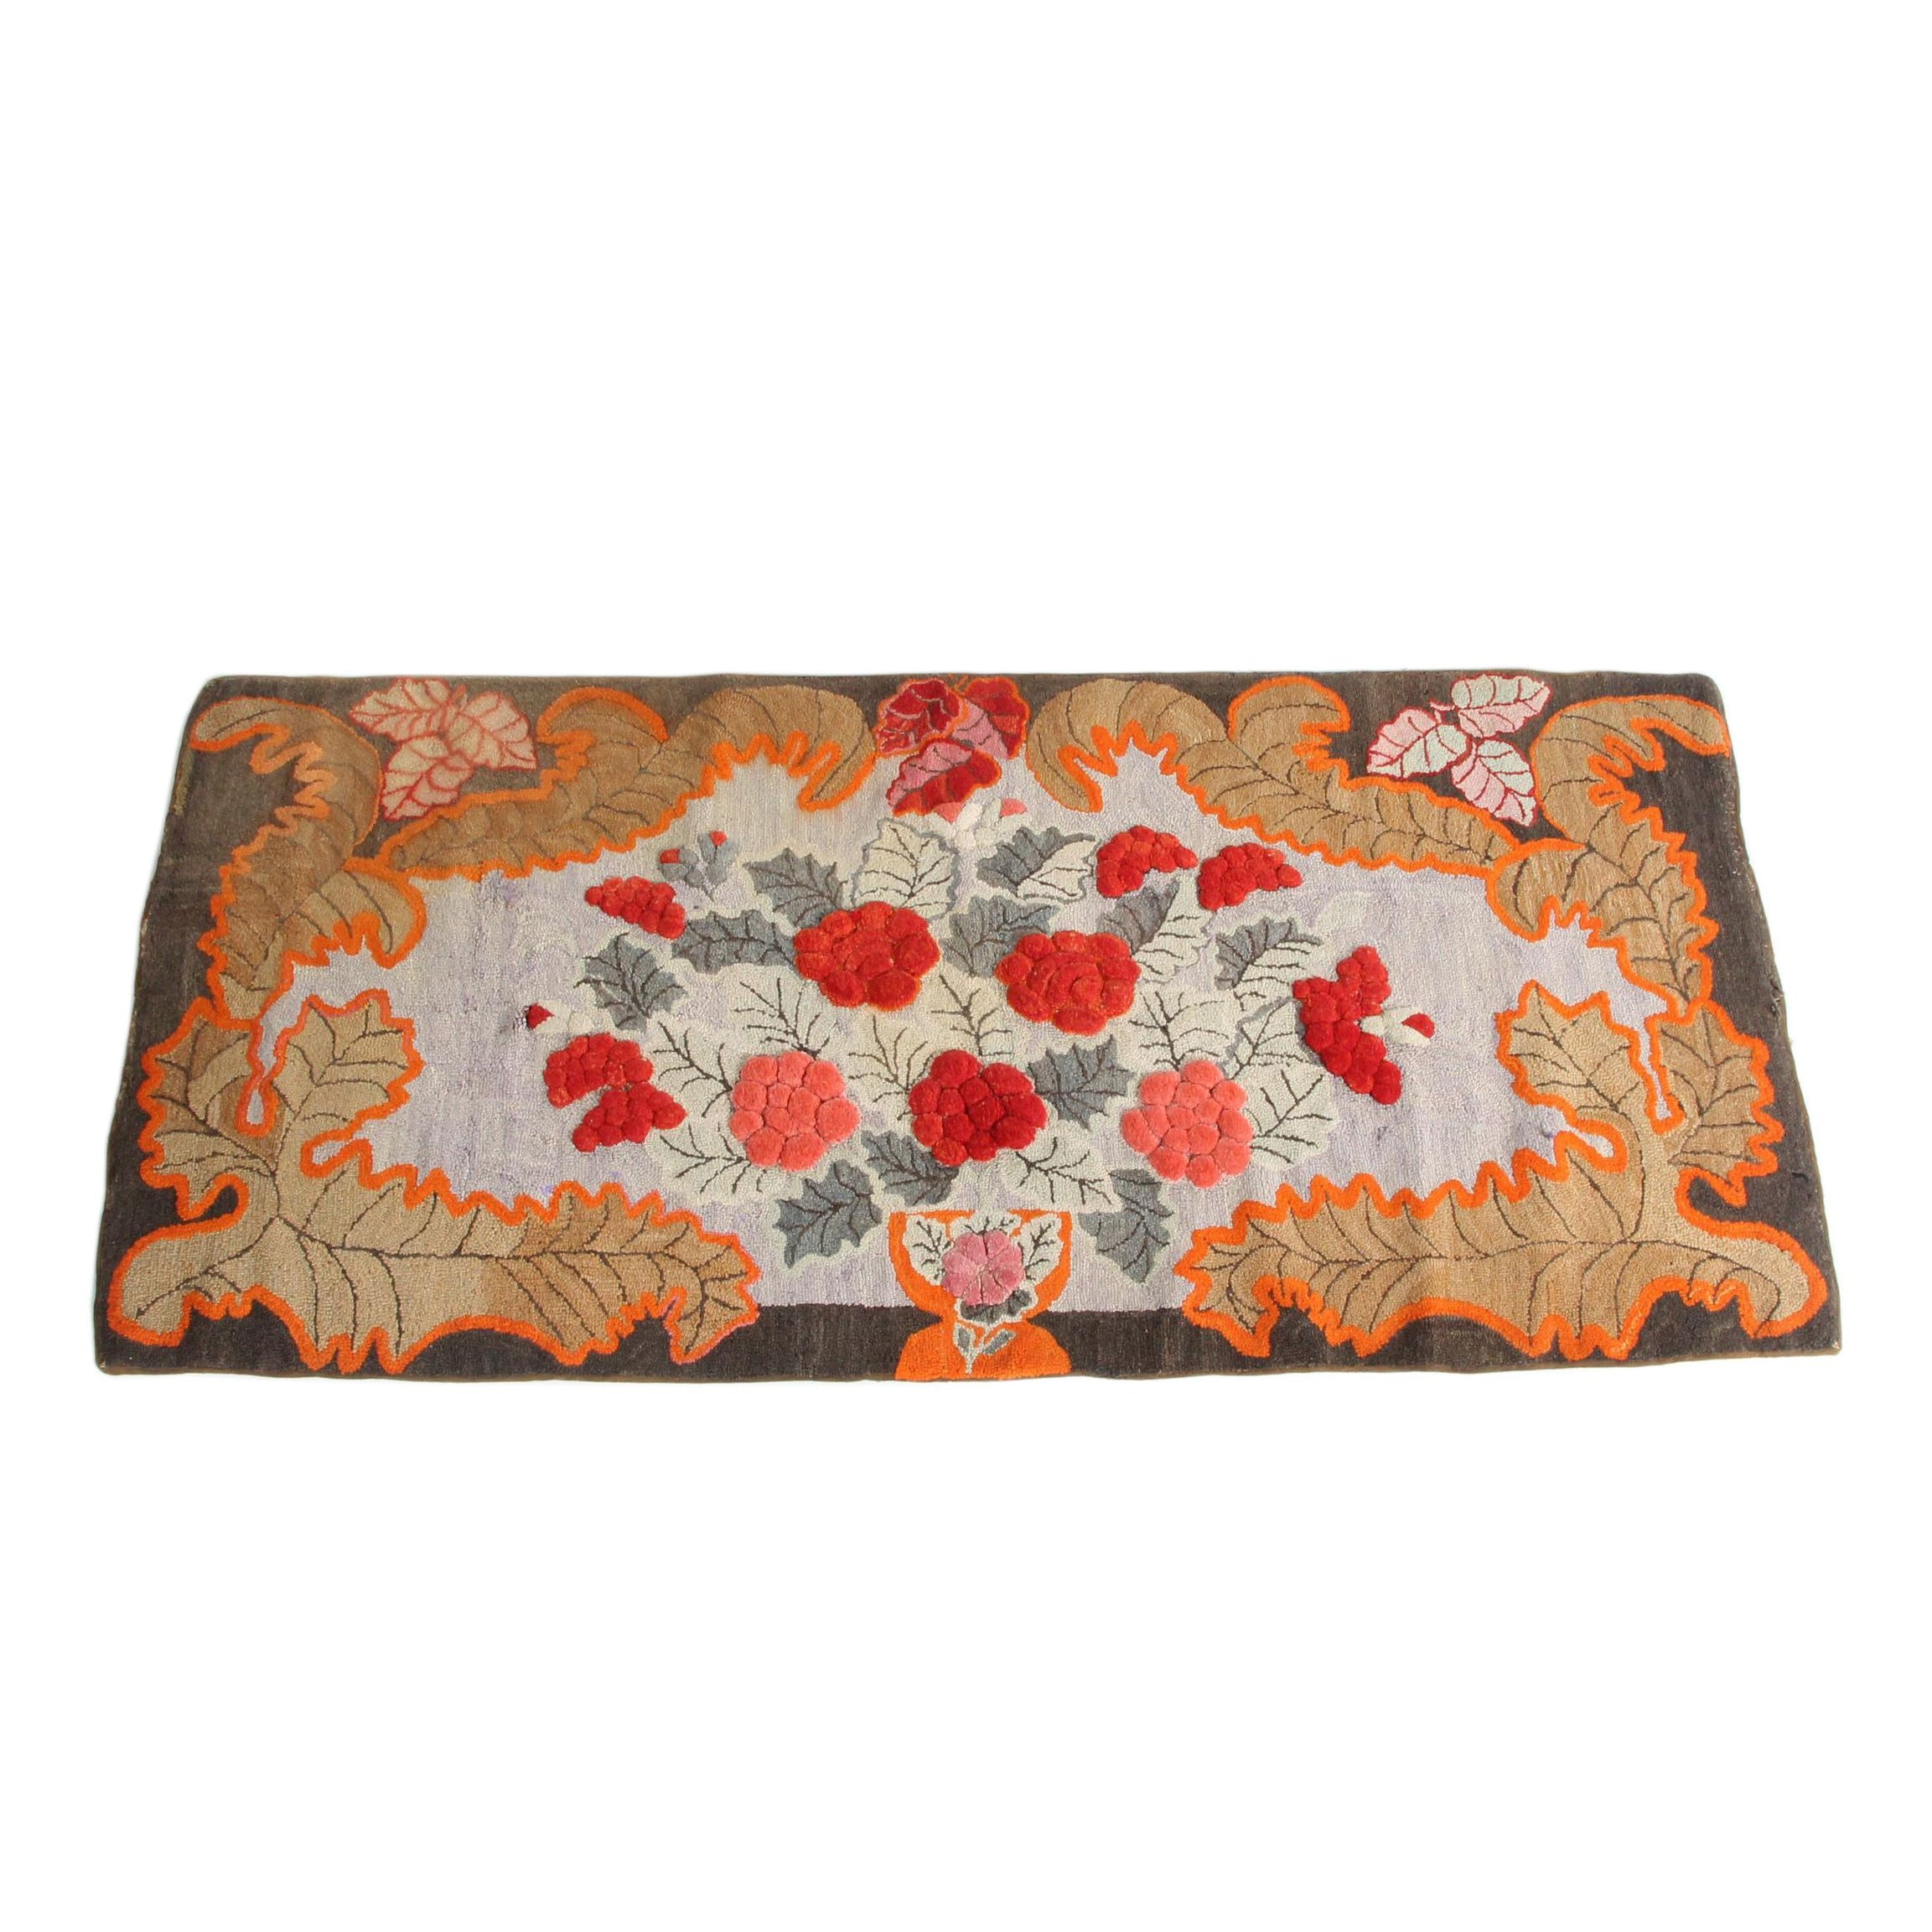 Vintage Hand-Hooked Floral and Foliate Wool Accent Rug